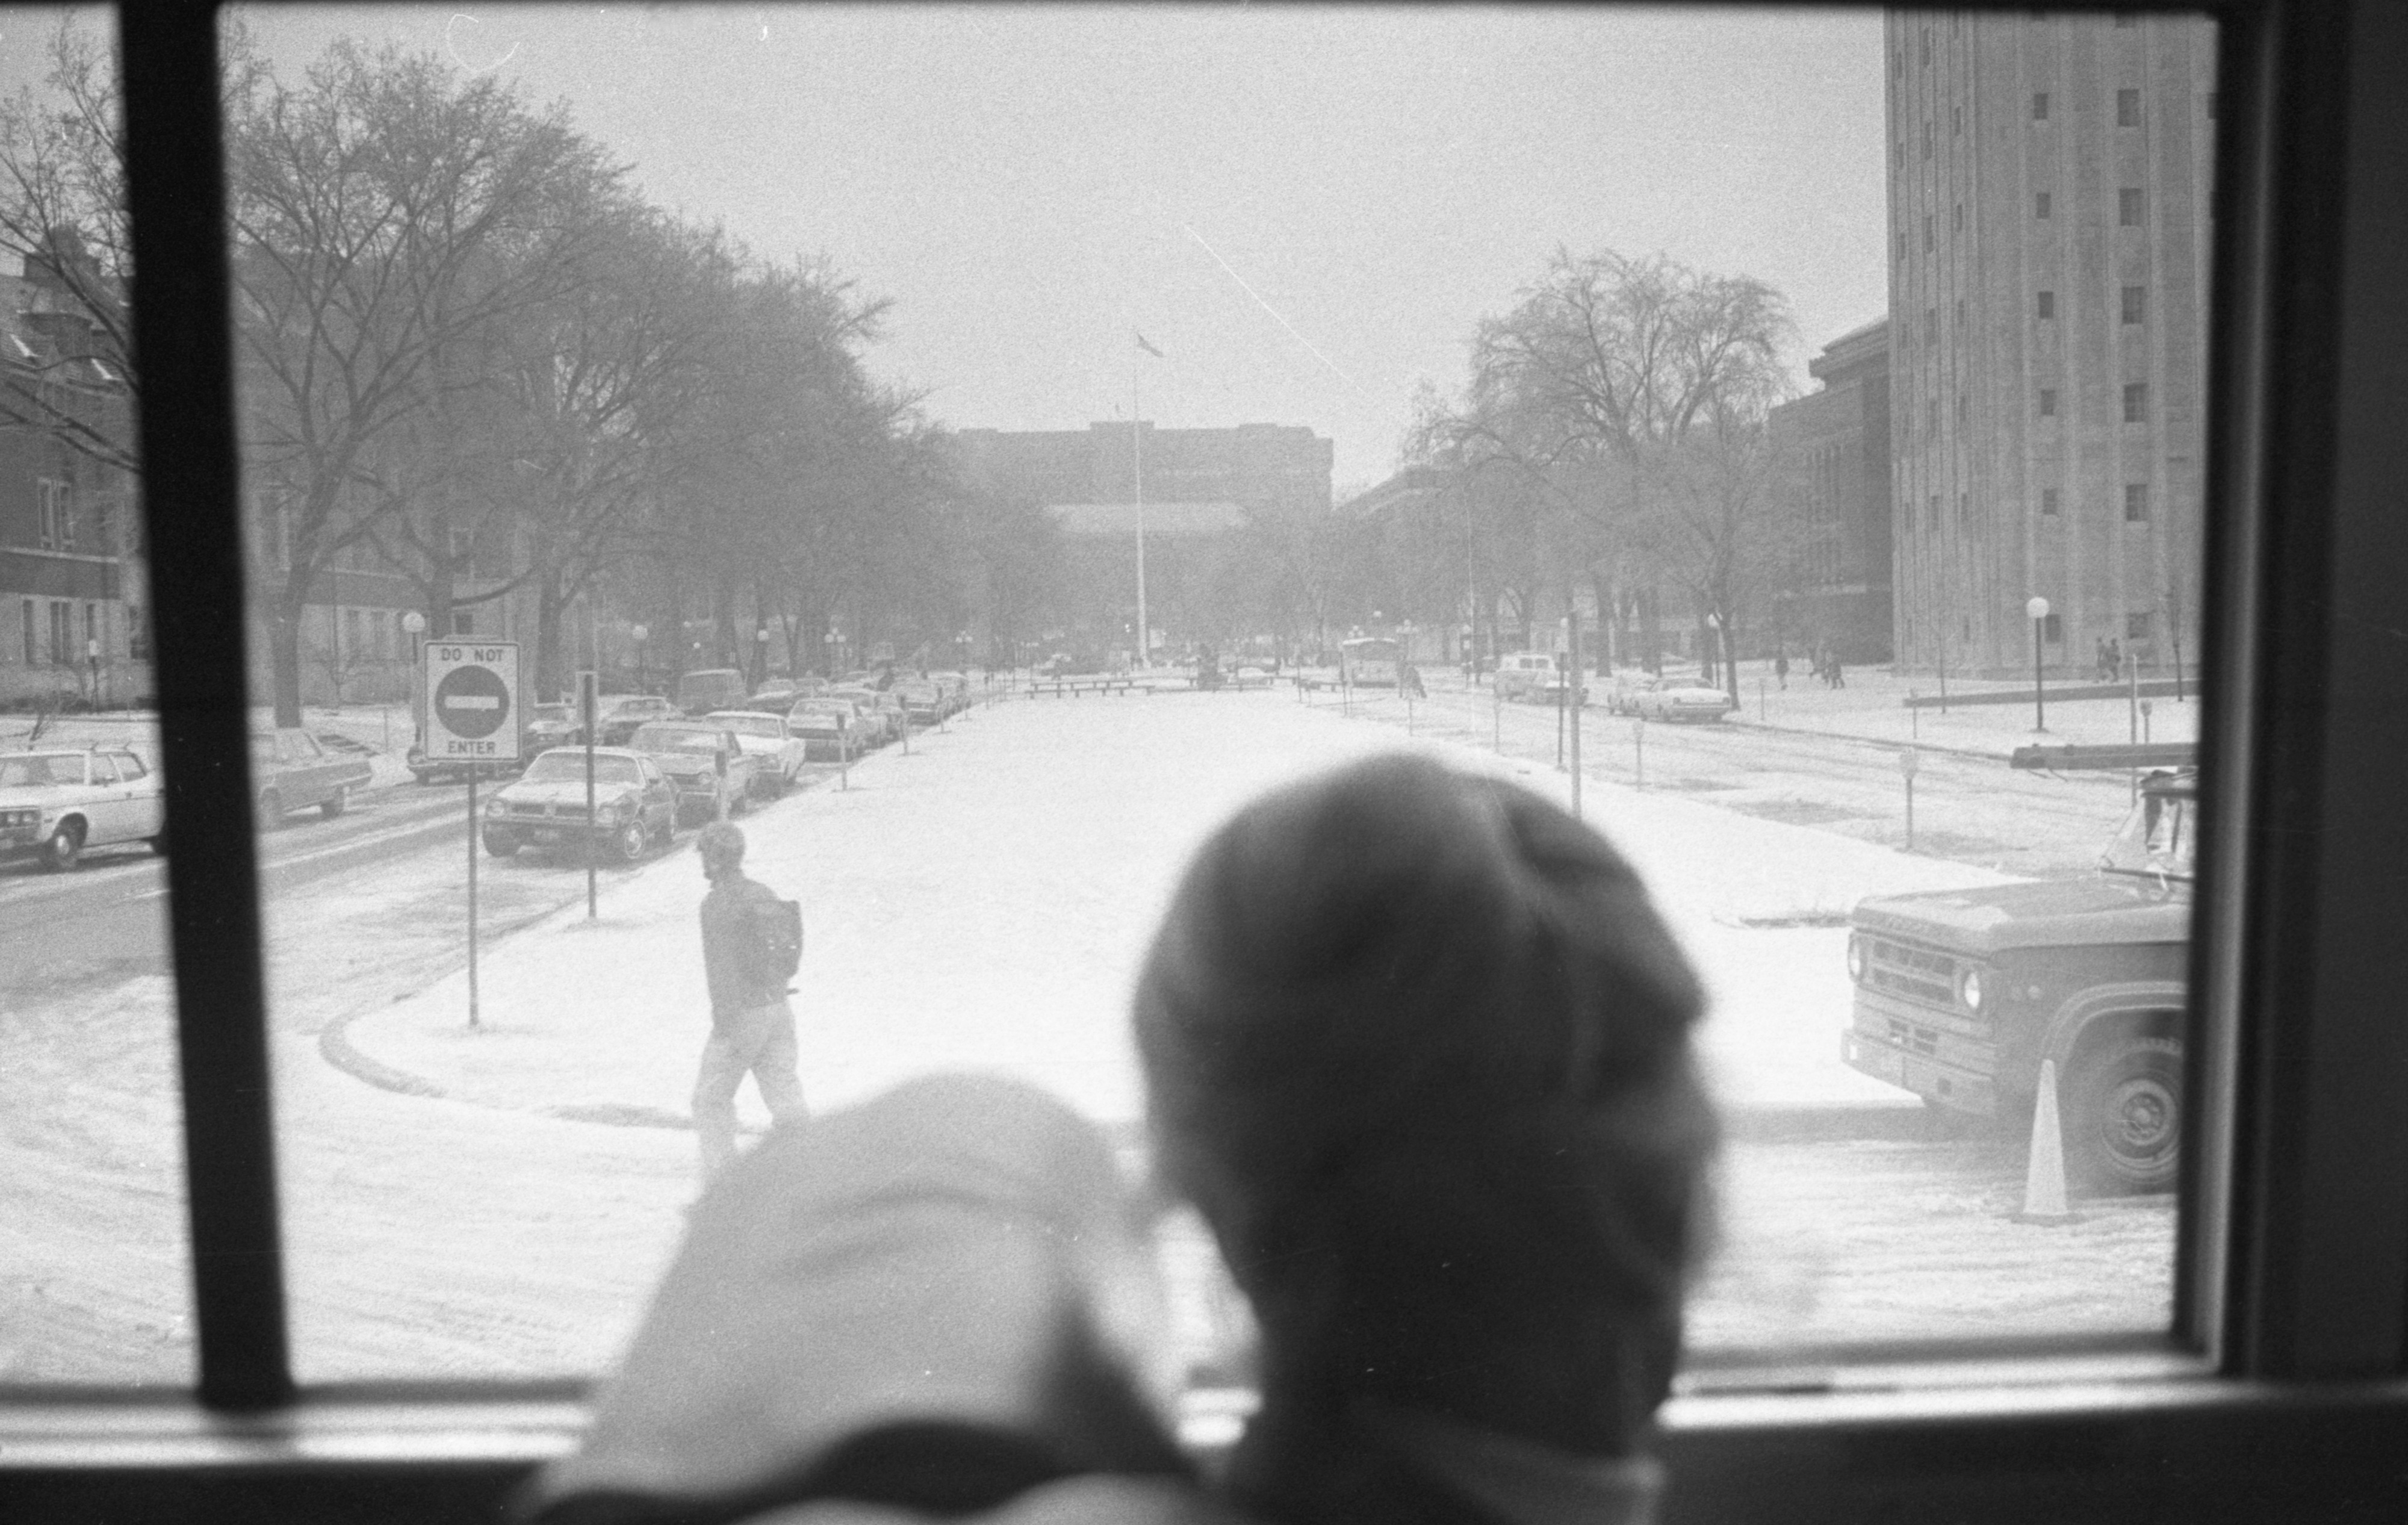 Ann Arbor League Of Women Voters Group Takes Bus Tour, April 1974 image